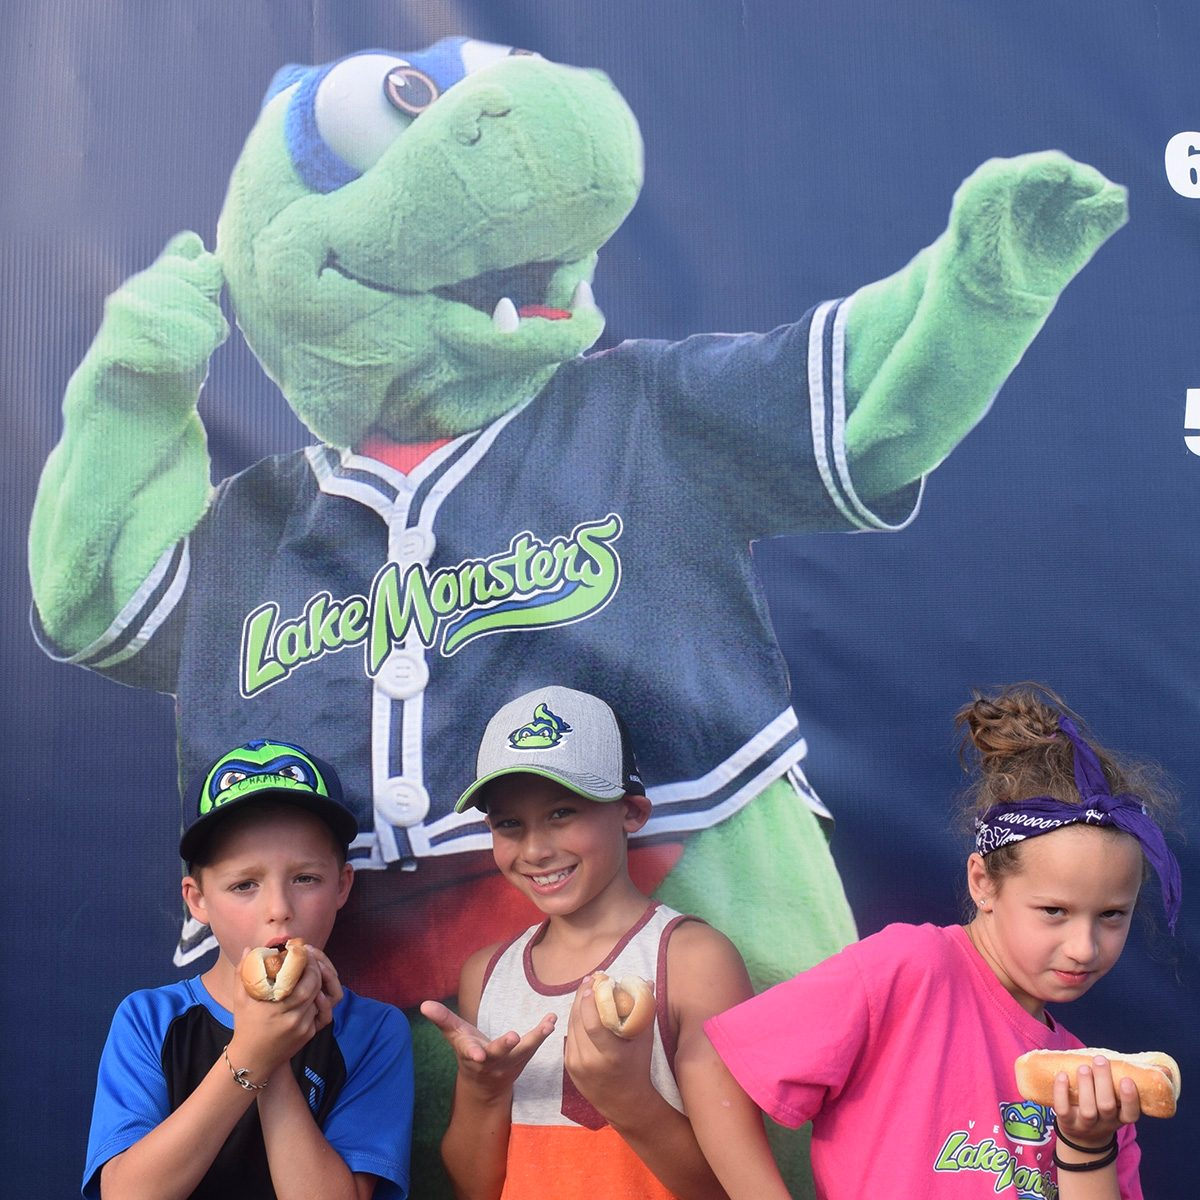 Three kids posing for picture in front of monster mascot